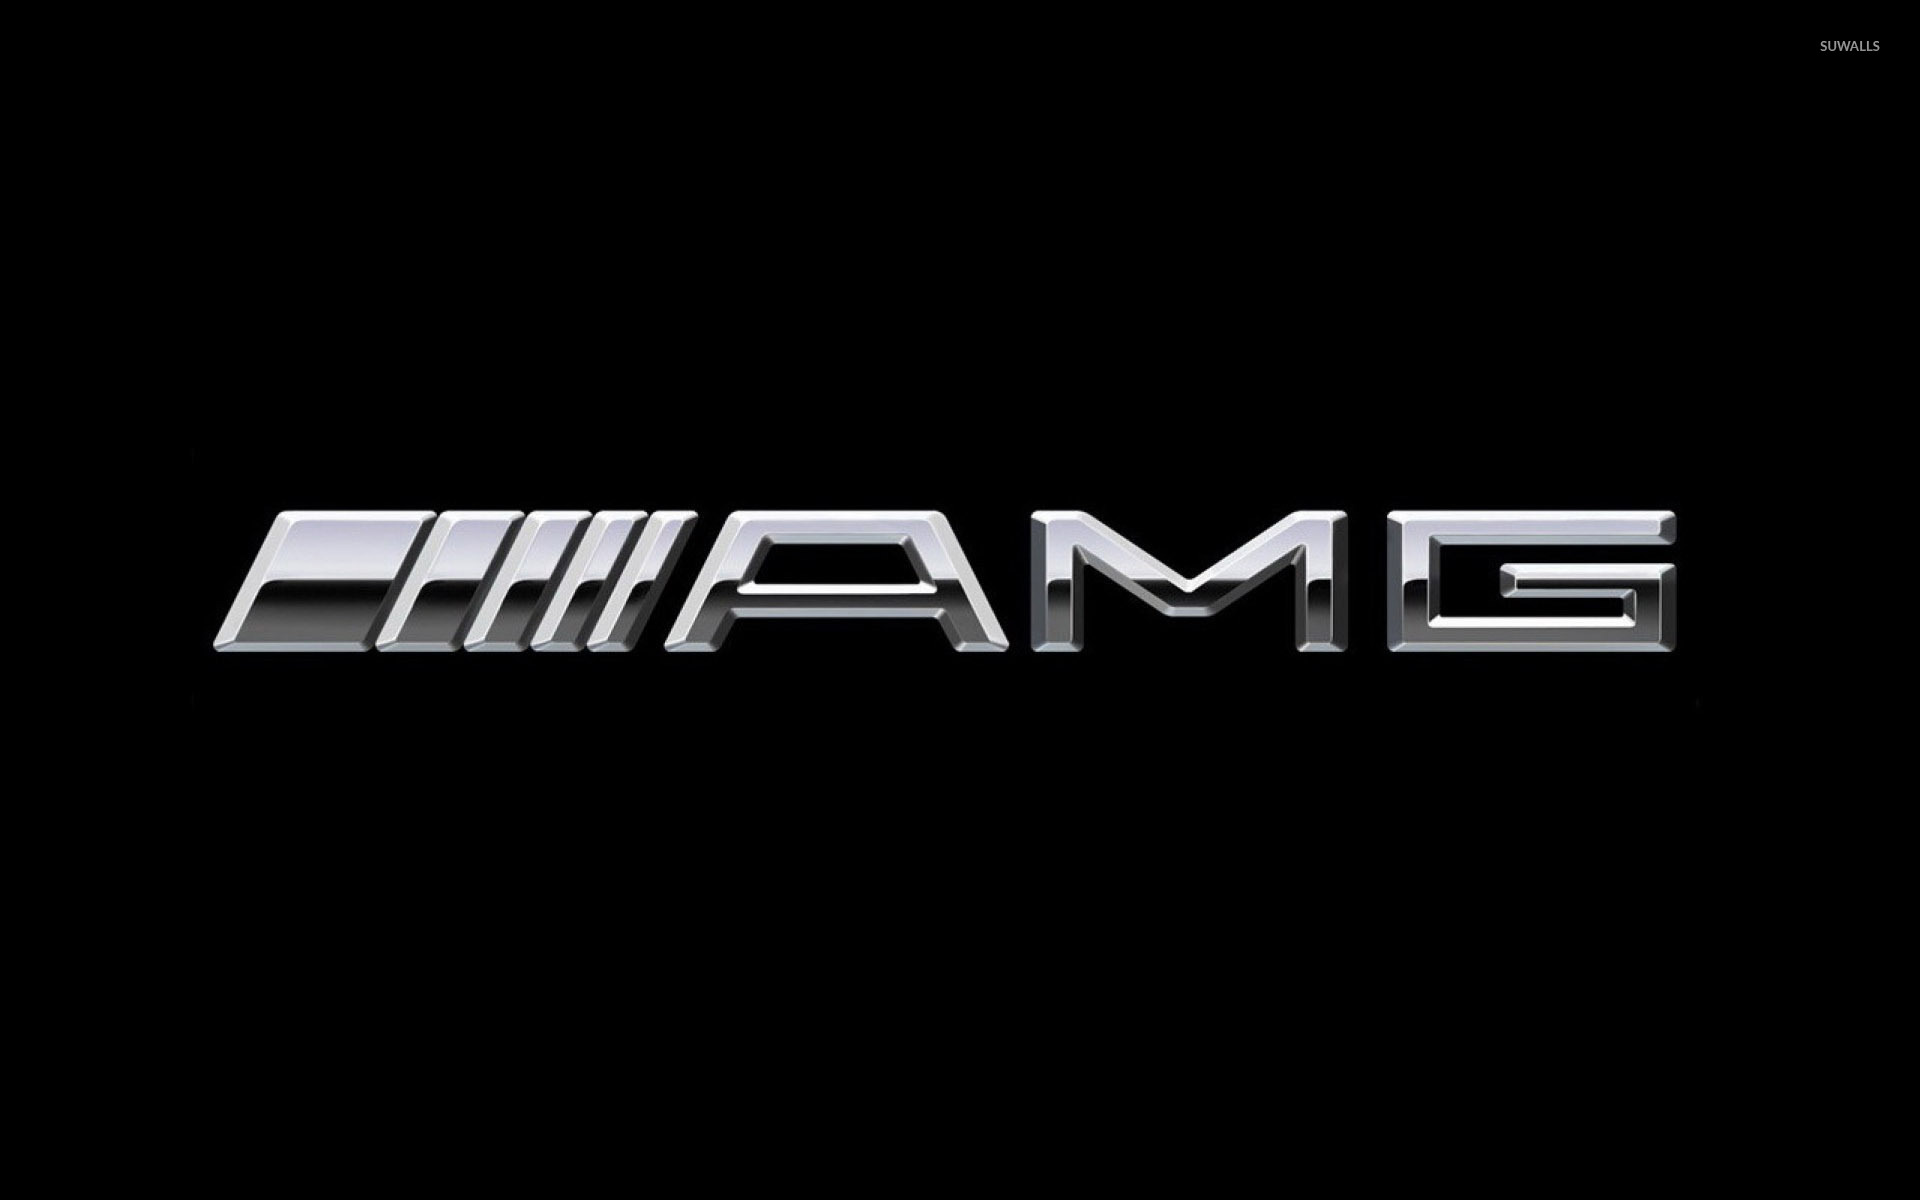 Mercedes benz amg logo wallpaper car wallpapers 26412 mercedes benz amg logo wallpaper voltagebd Image collections